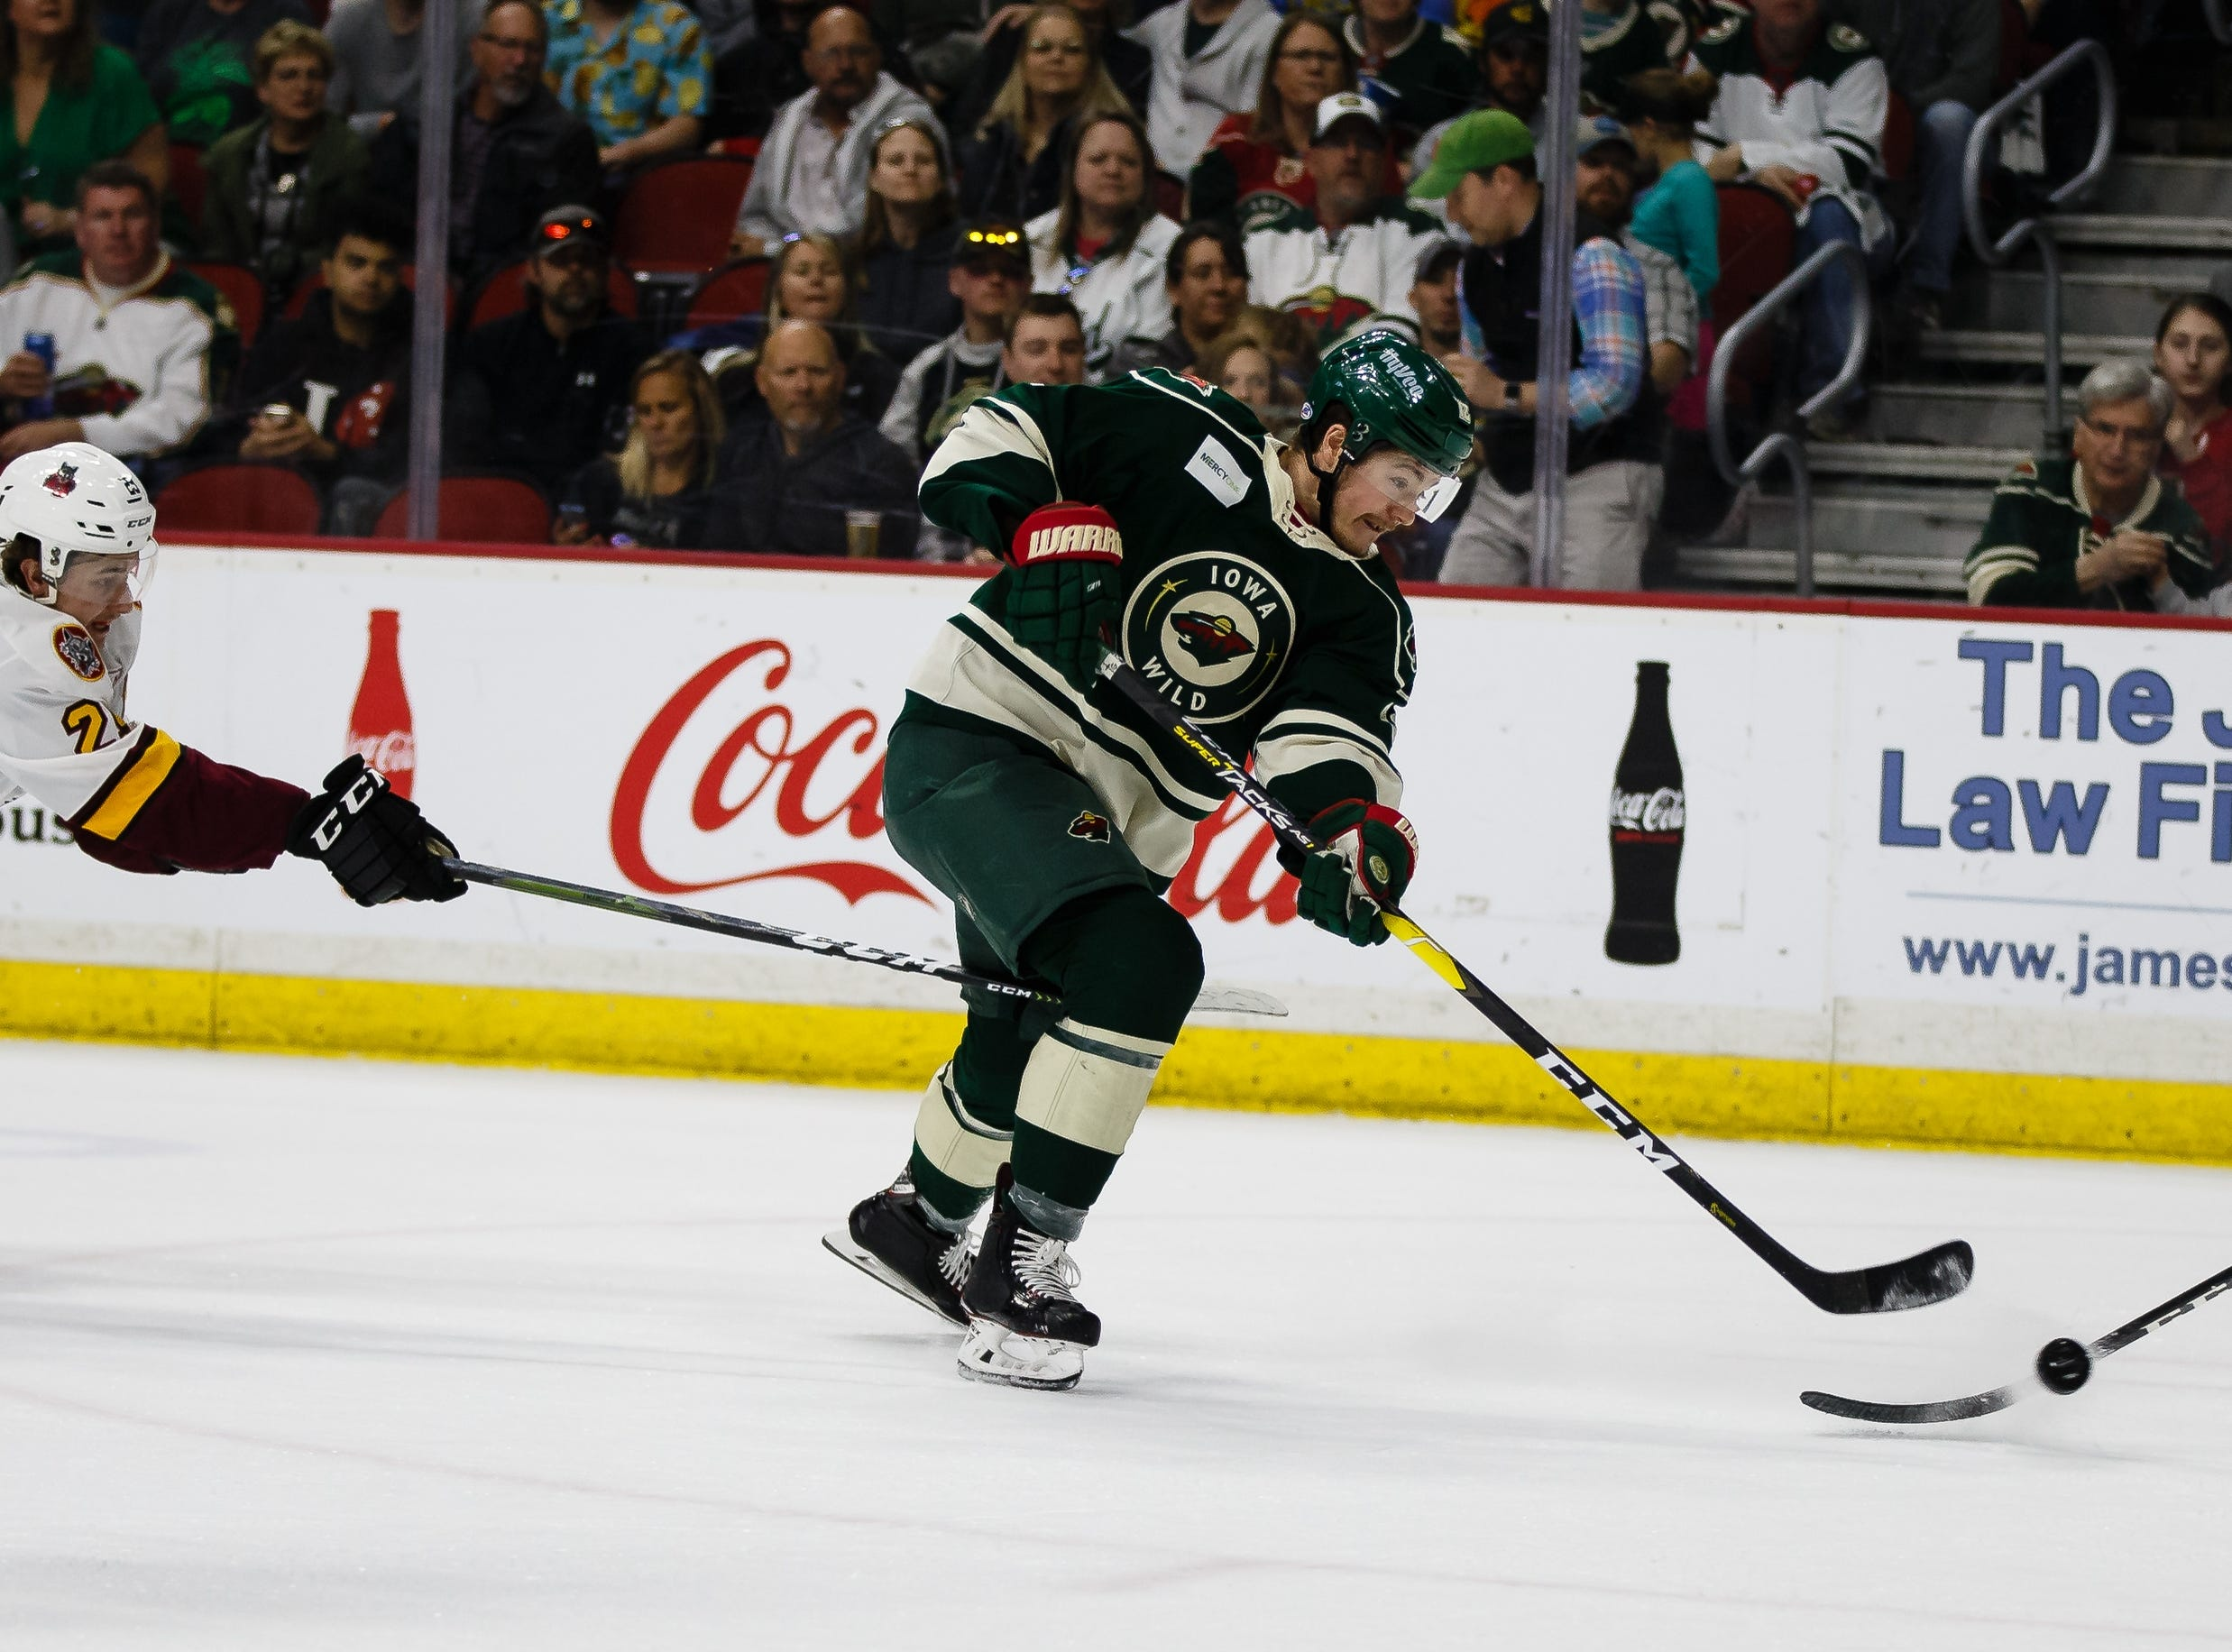 The Iowa Wild's Ryan Donato scores to make the score 1-1 during their Calder Cup playoff hockey game against the Chicago Wolves on Friday, May 10, 2019, in Des Moines.